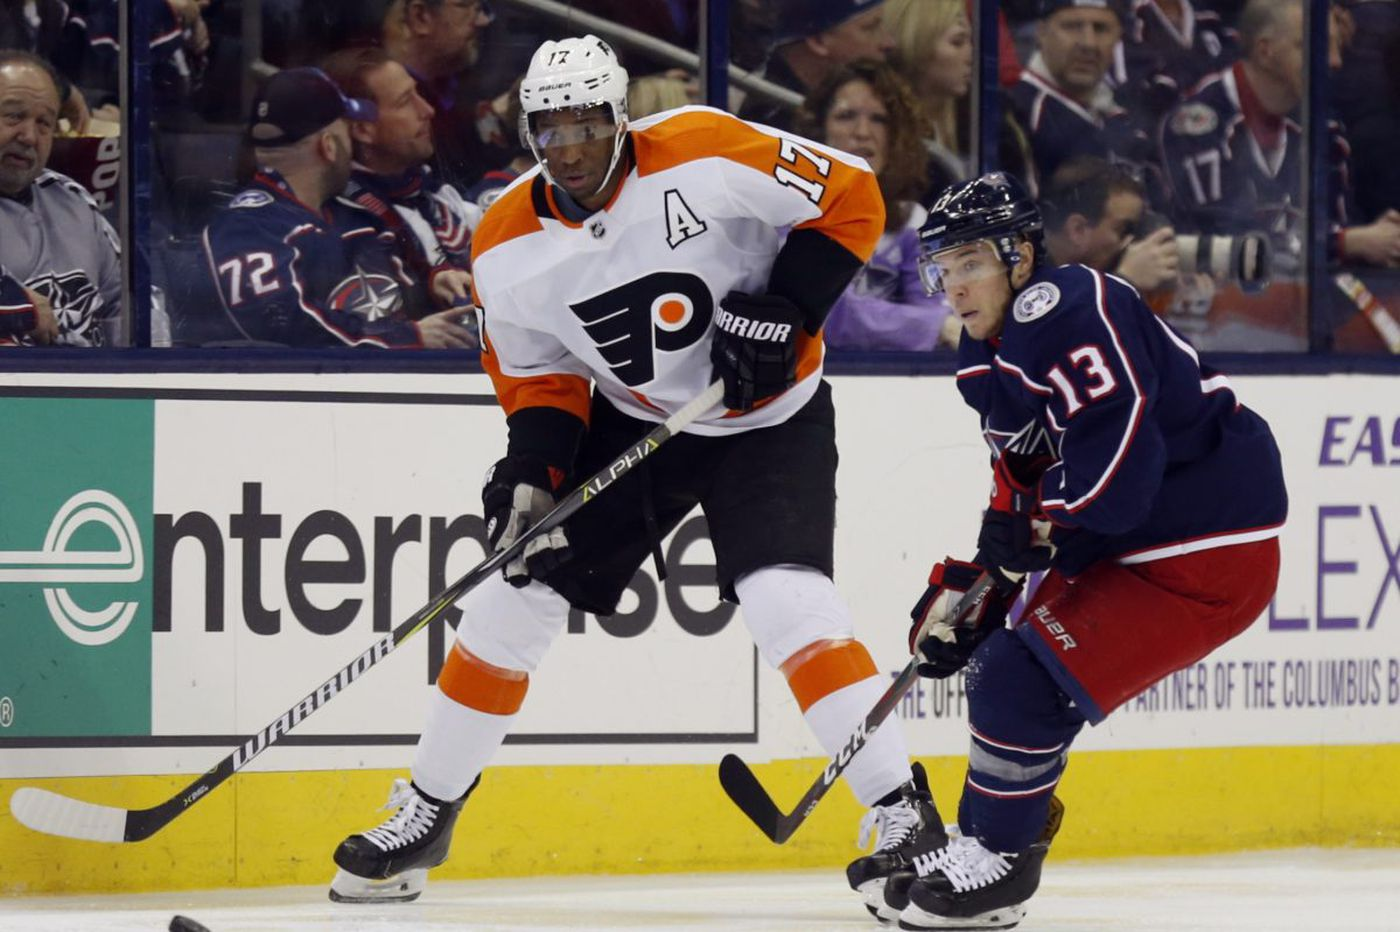 Flyers' Wayne Simmonds to miss 2-3 weeks; Alex Lyon gets start